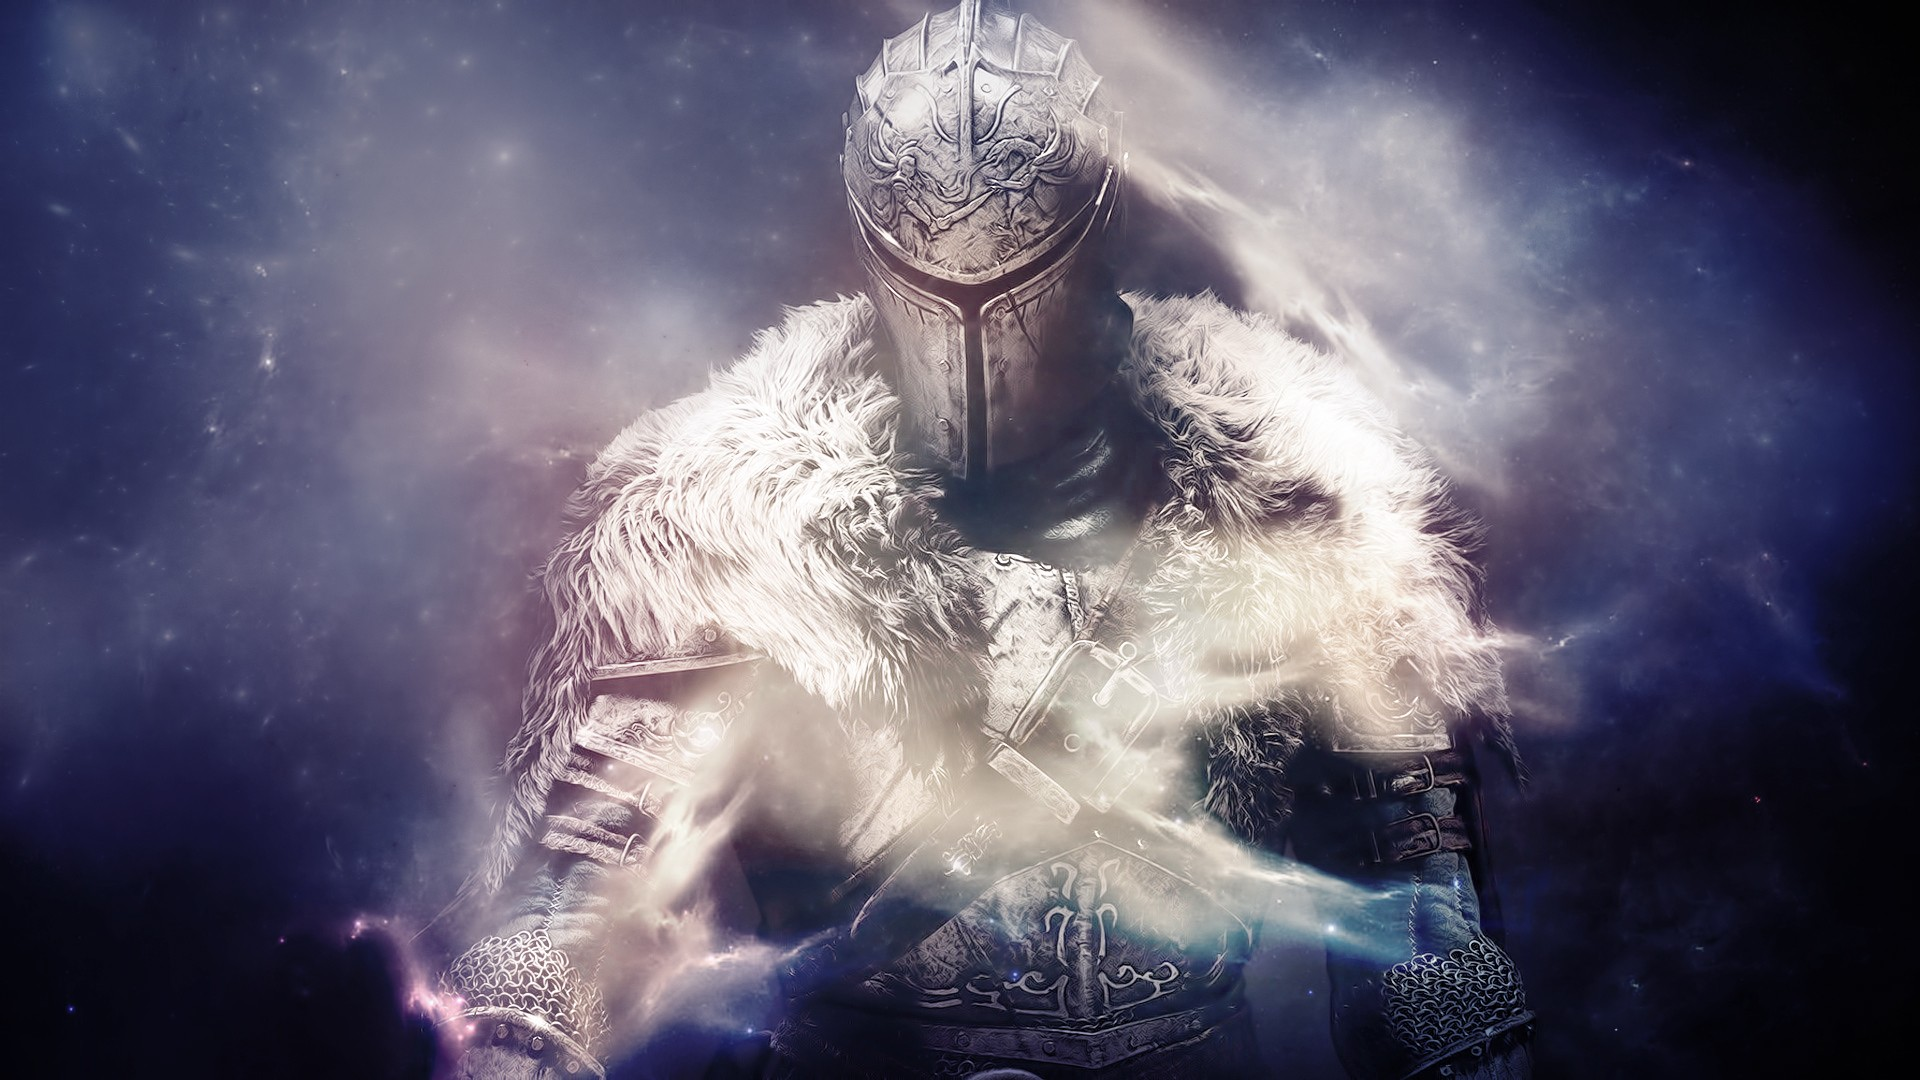 Dark Souls 3 Hd Wallpaper: 43+ Dark Souls Wallpapers ·① Download Free Stunning HD